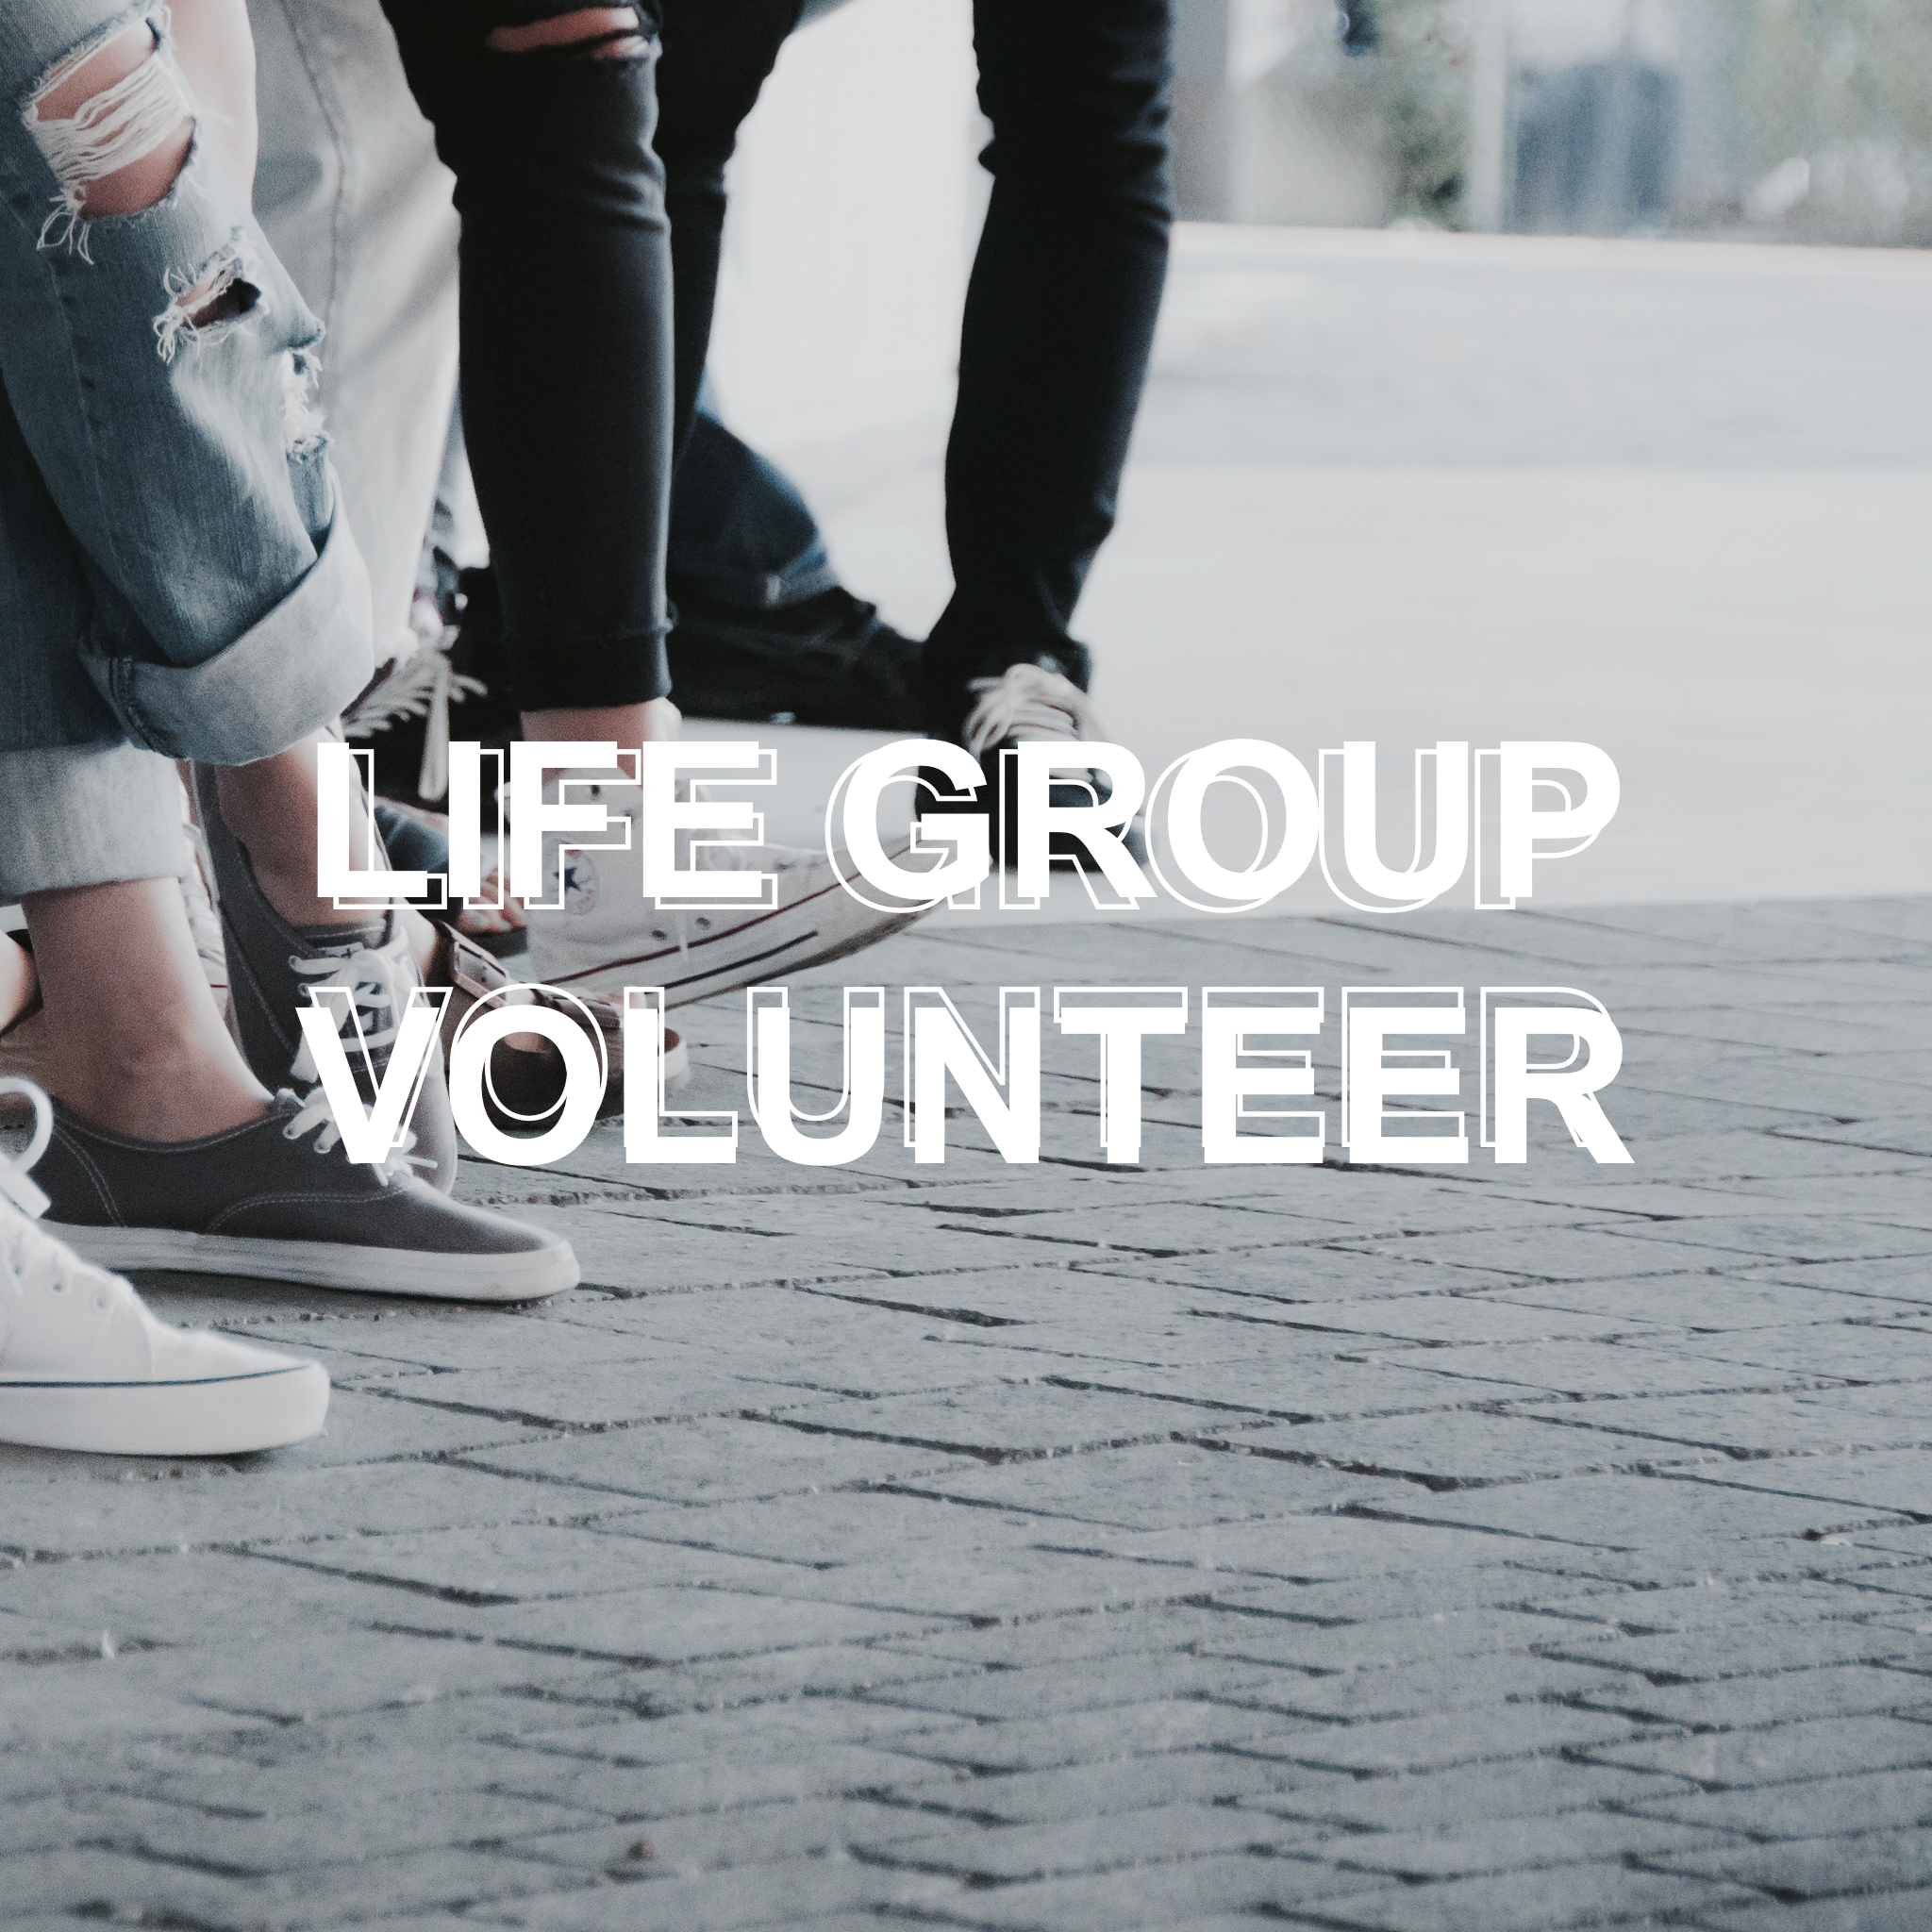 - Interested in receiving information about participating in our Life Group Ministry? In just 3 easy steps we can get the process started…